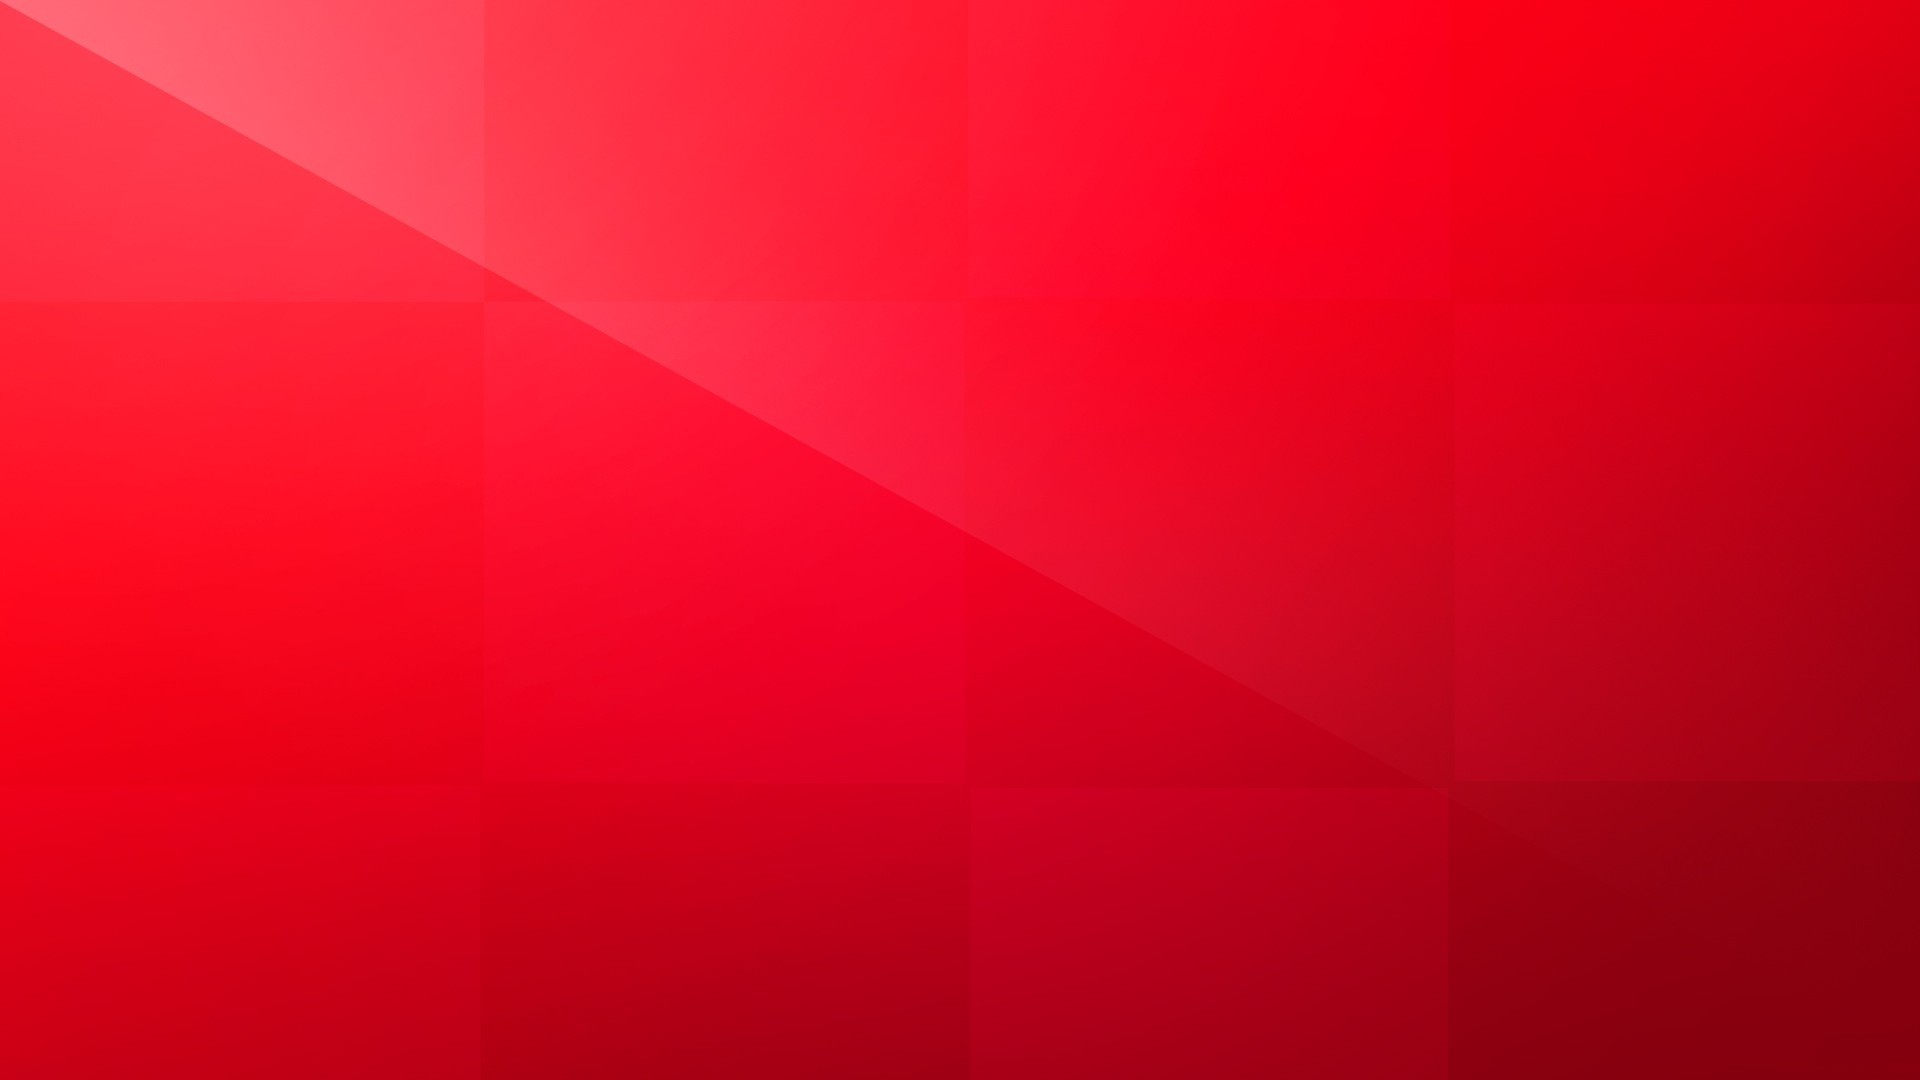 Preview Wallpaper Background Solid Line Cell Bright Red Color Background 1920x1080 Wallpaper Teahub Io